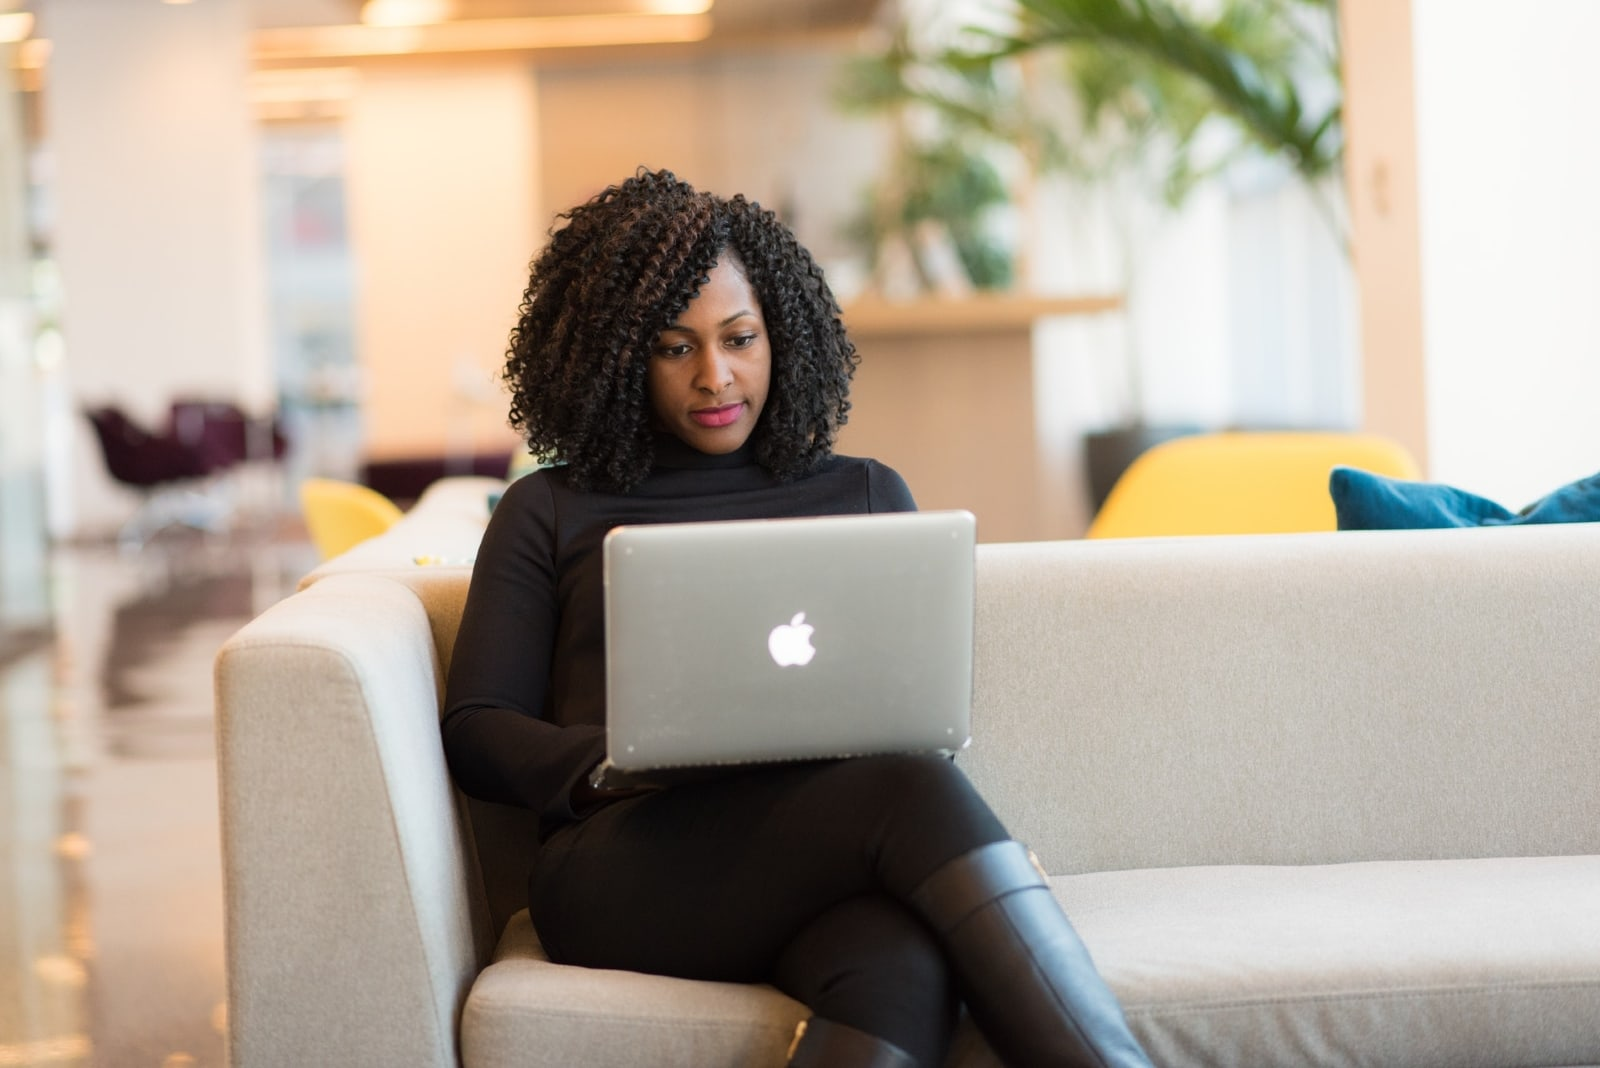 woman using laptop while sitting on couch